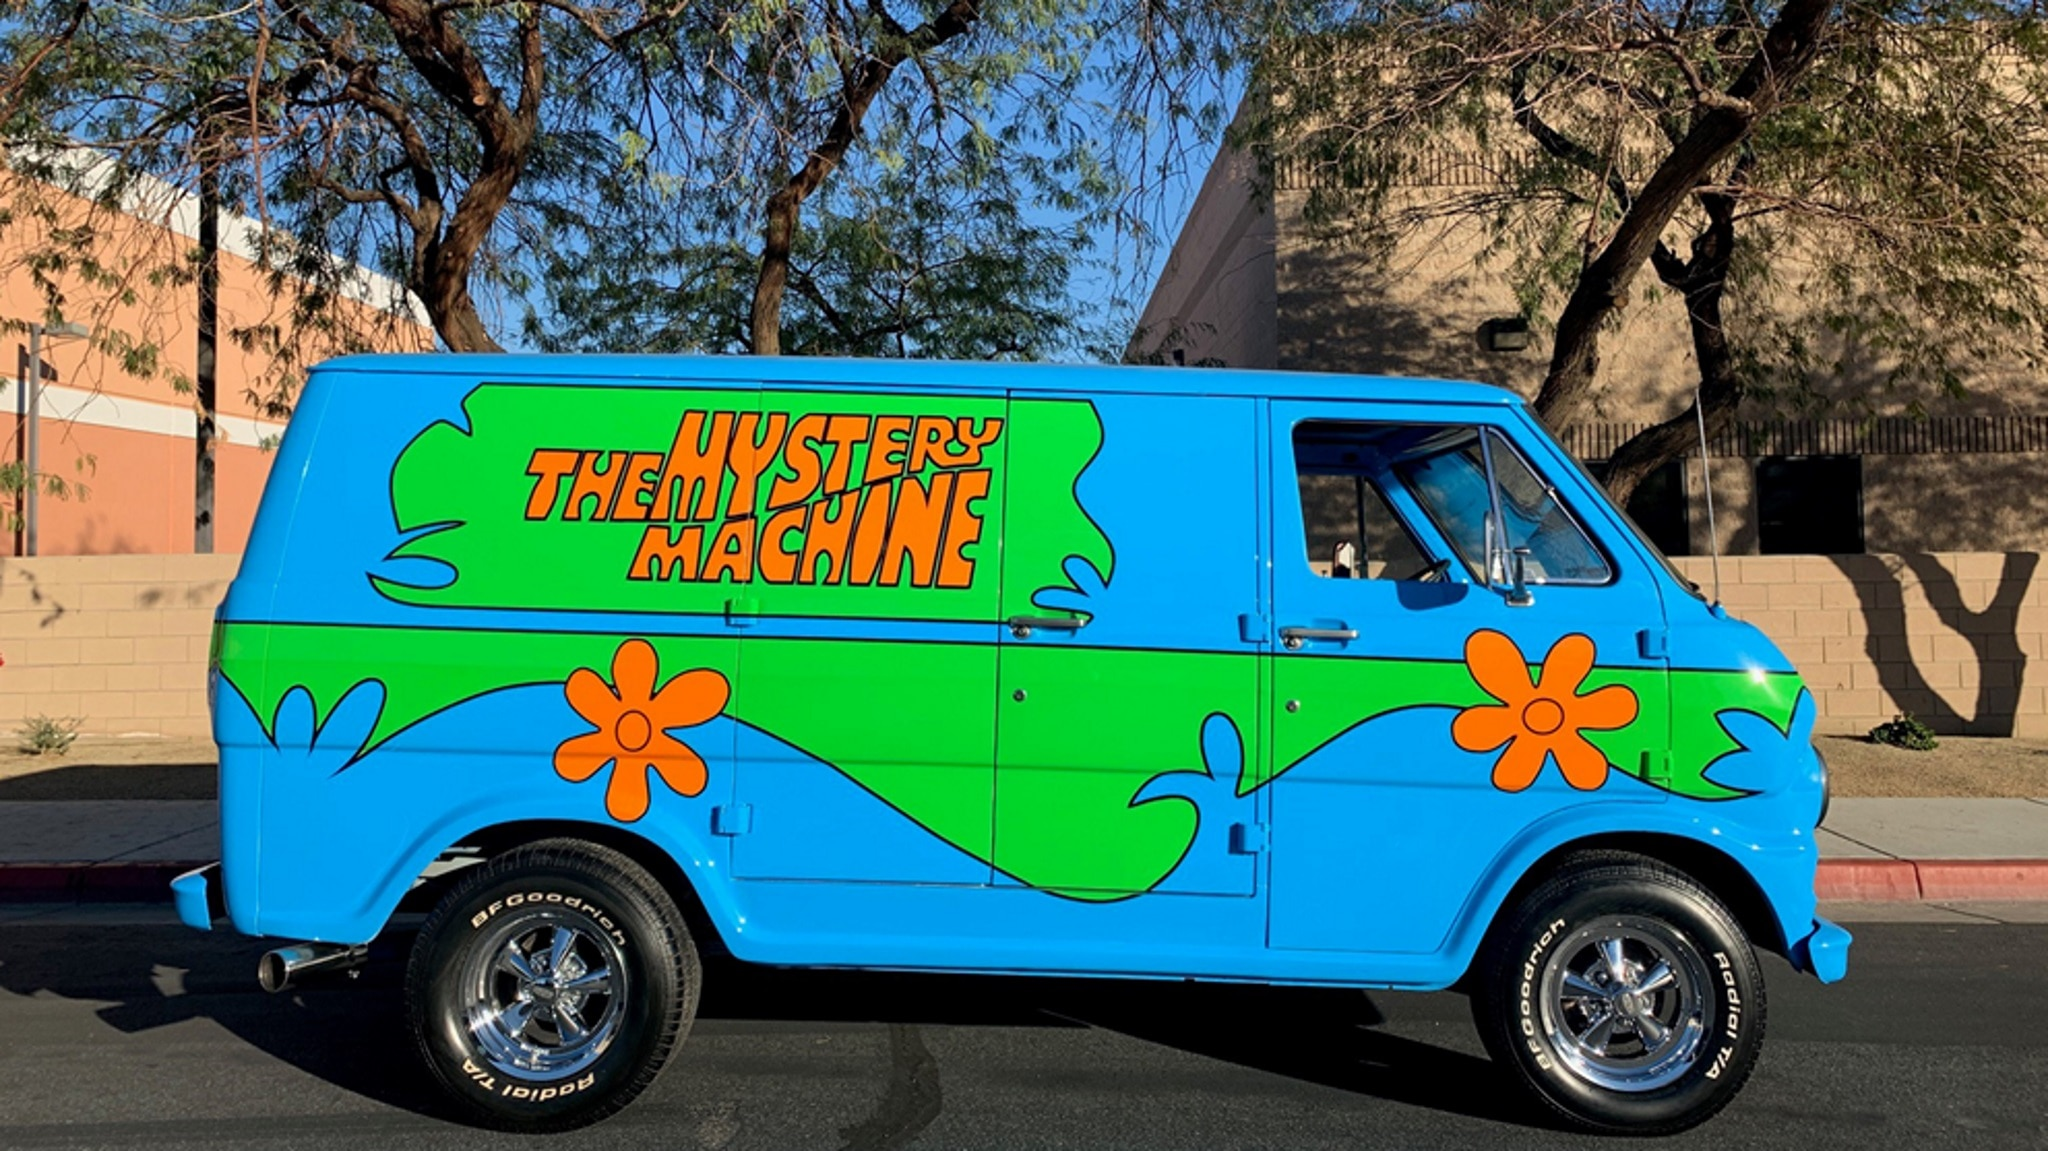 How Many Scooby Snacks Would You Give To Own The Mystery